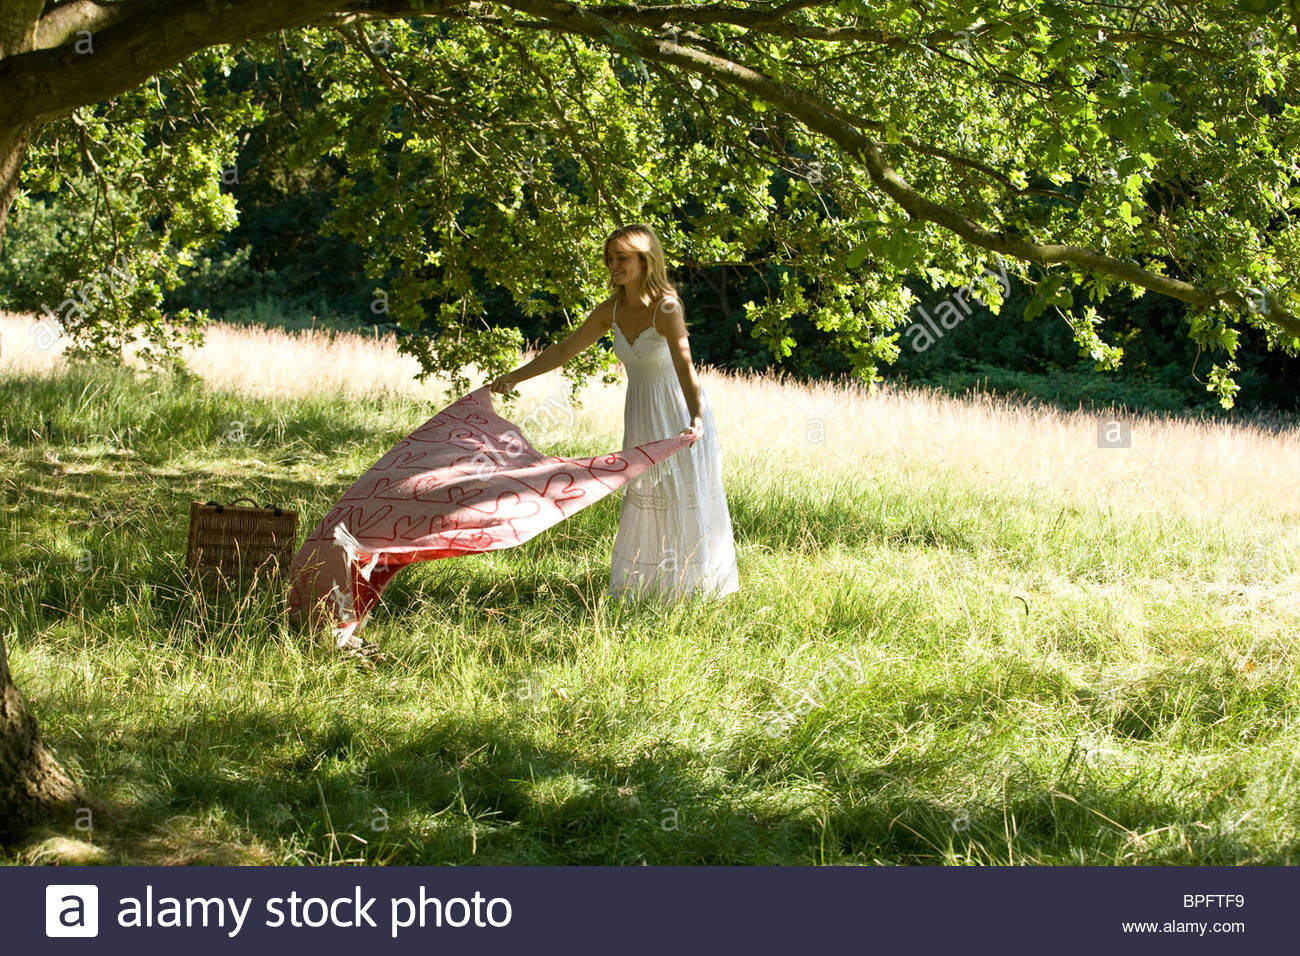 A young woman laying a picnic blanket on the grass - Stock Image